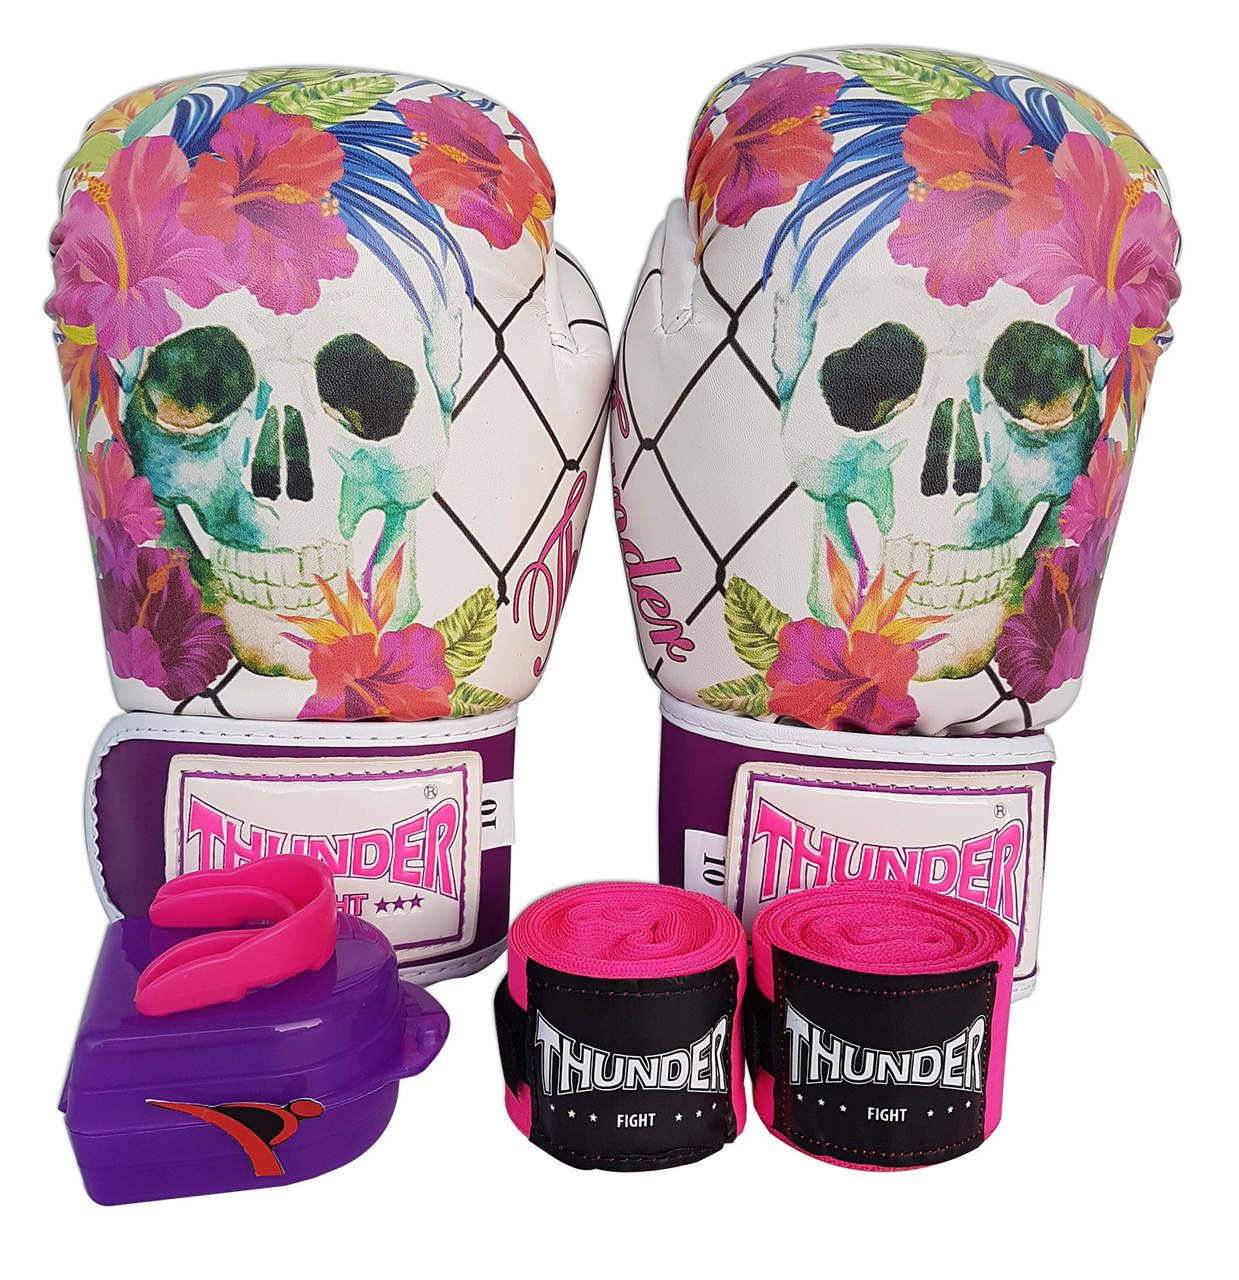 Kit de Boxe / Muay Thai Feminino 10oz - Caveira Grade - Thunder Fight   - PRALUTA SHOP